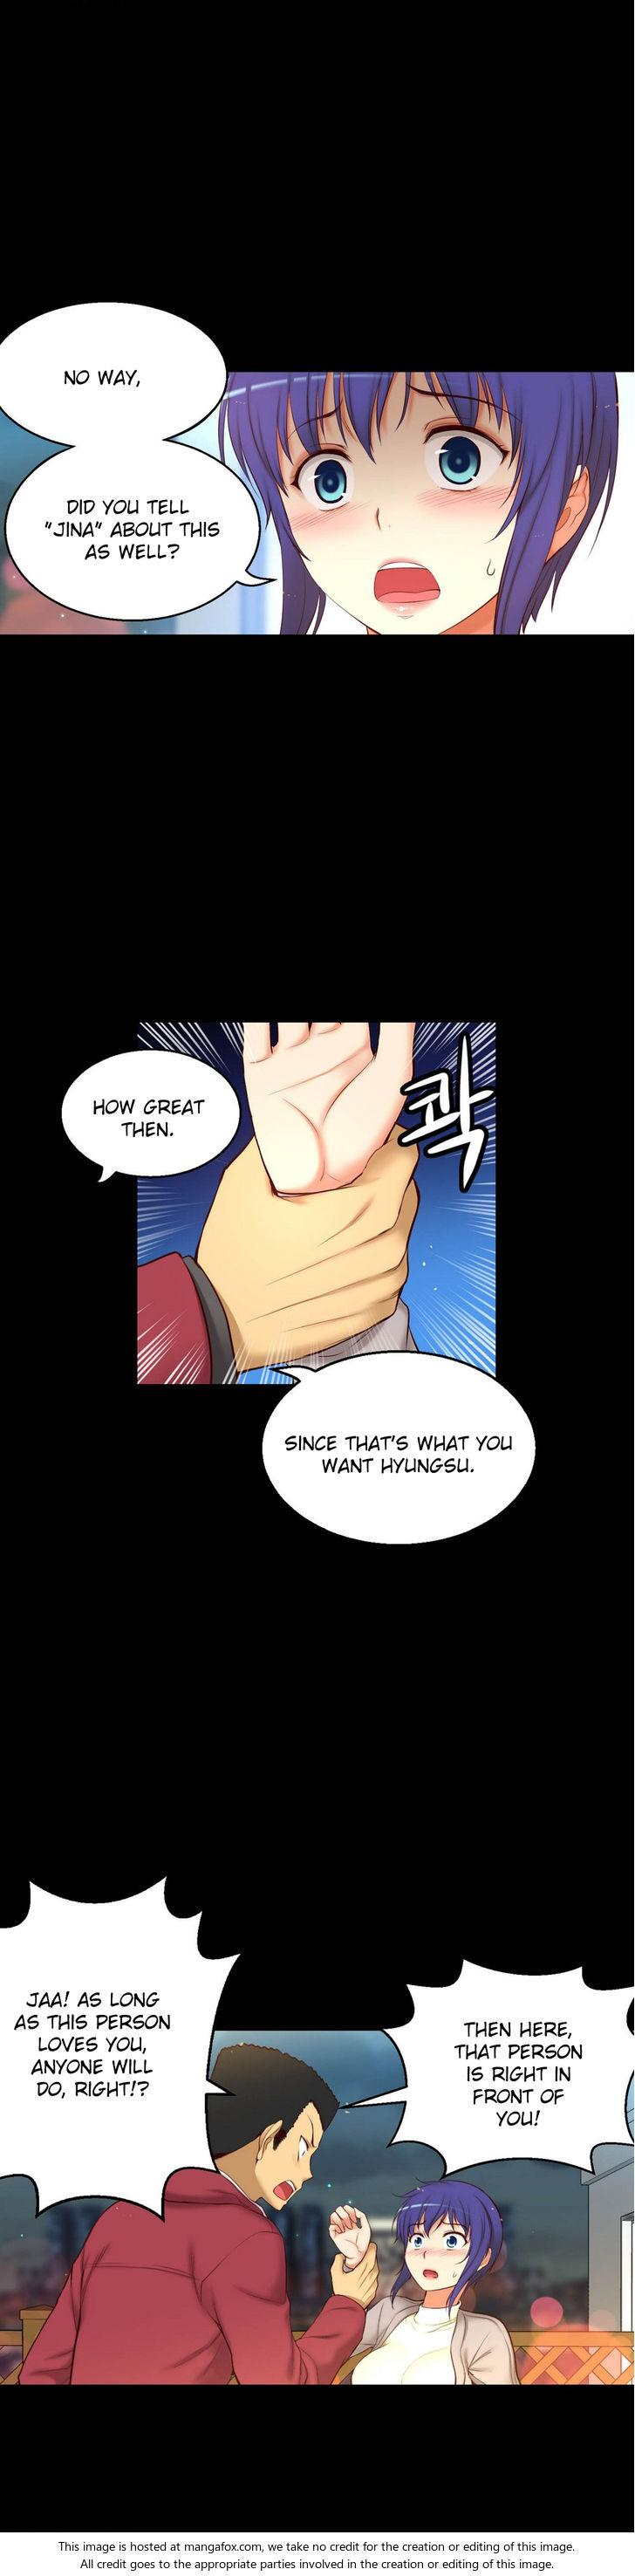 [Donggul Gom] She is Young (English) Part 1/2 1470